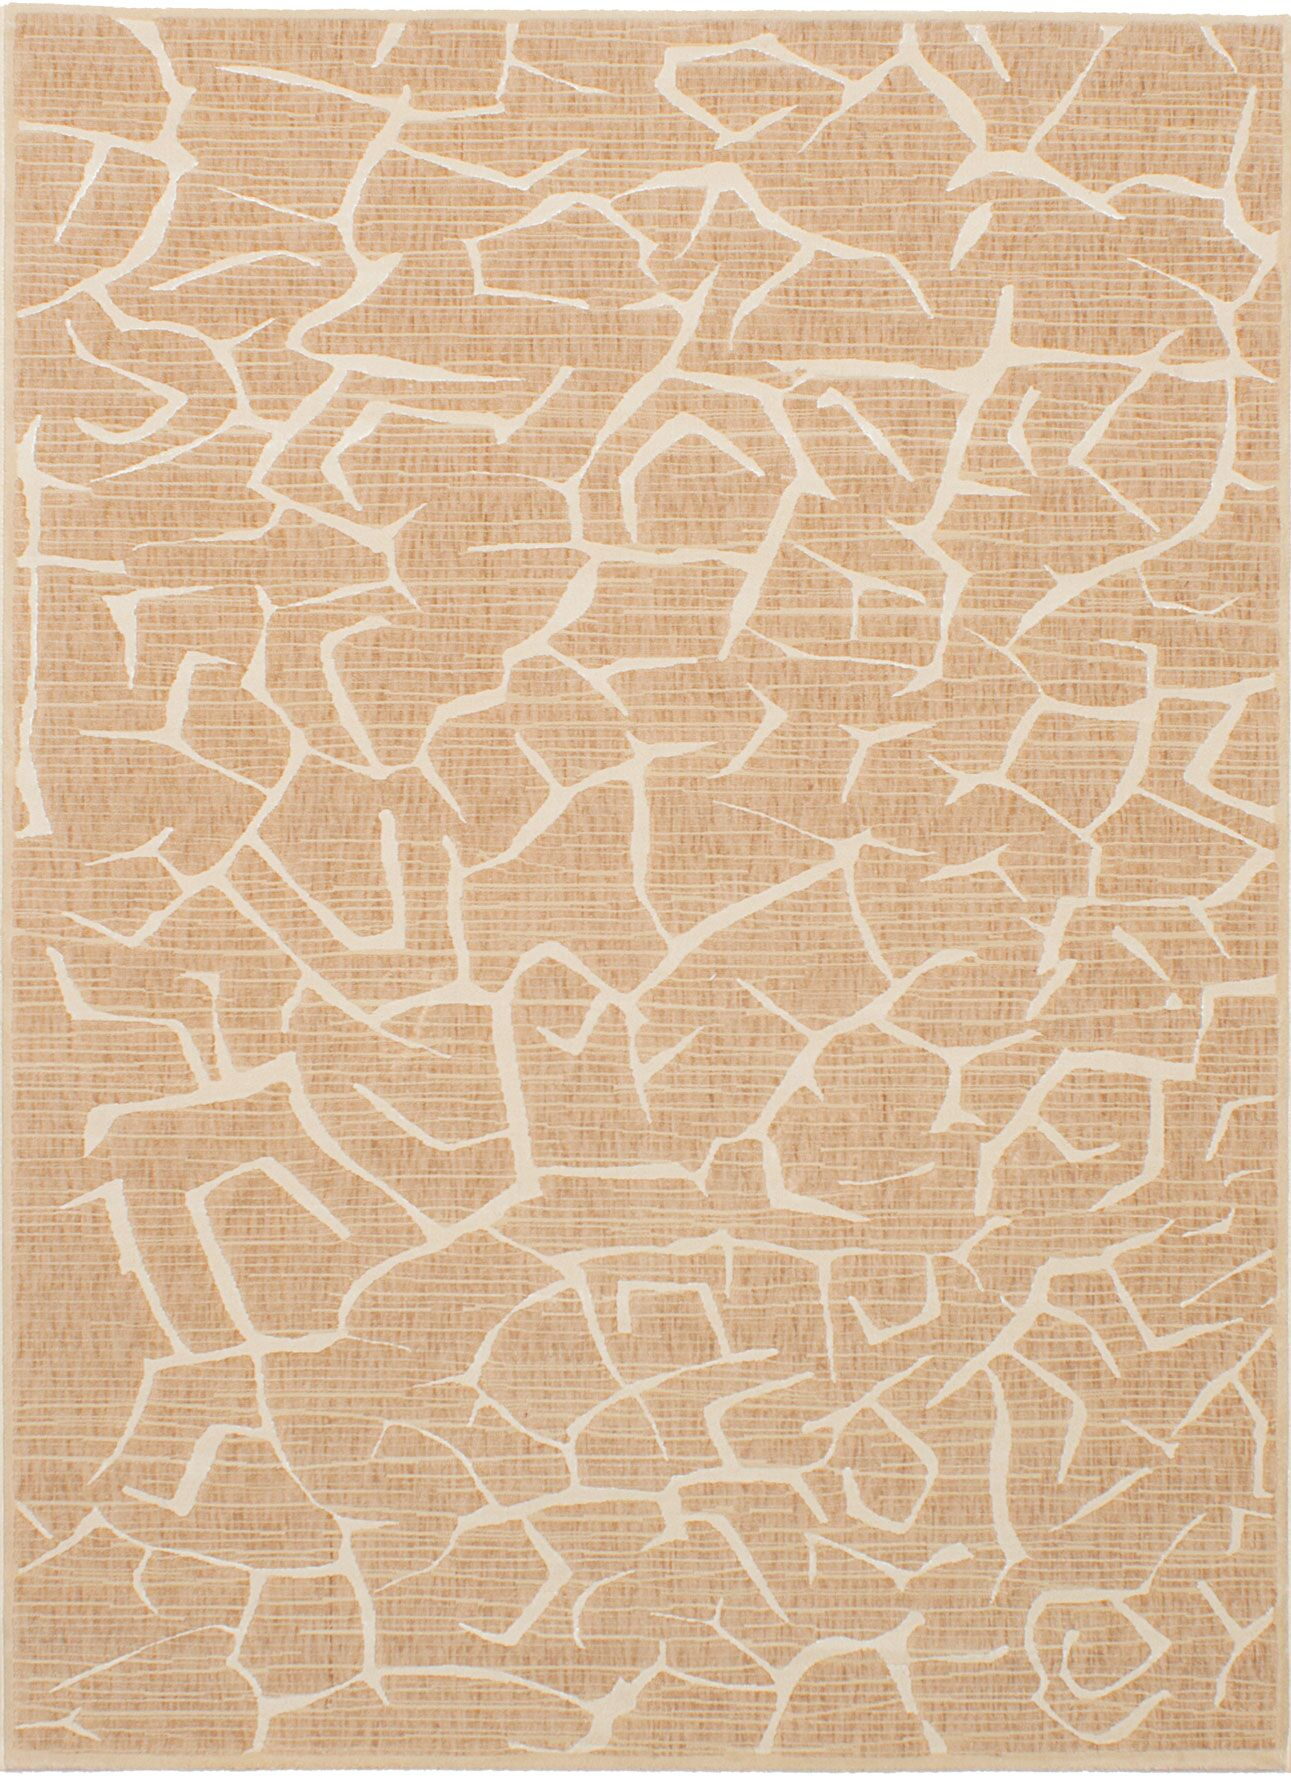 Raftery Tan Area Rug Rug Size: Rectangle 5'6